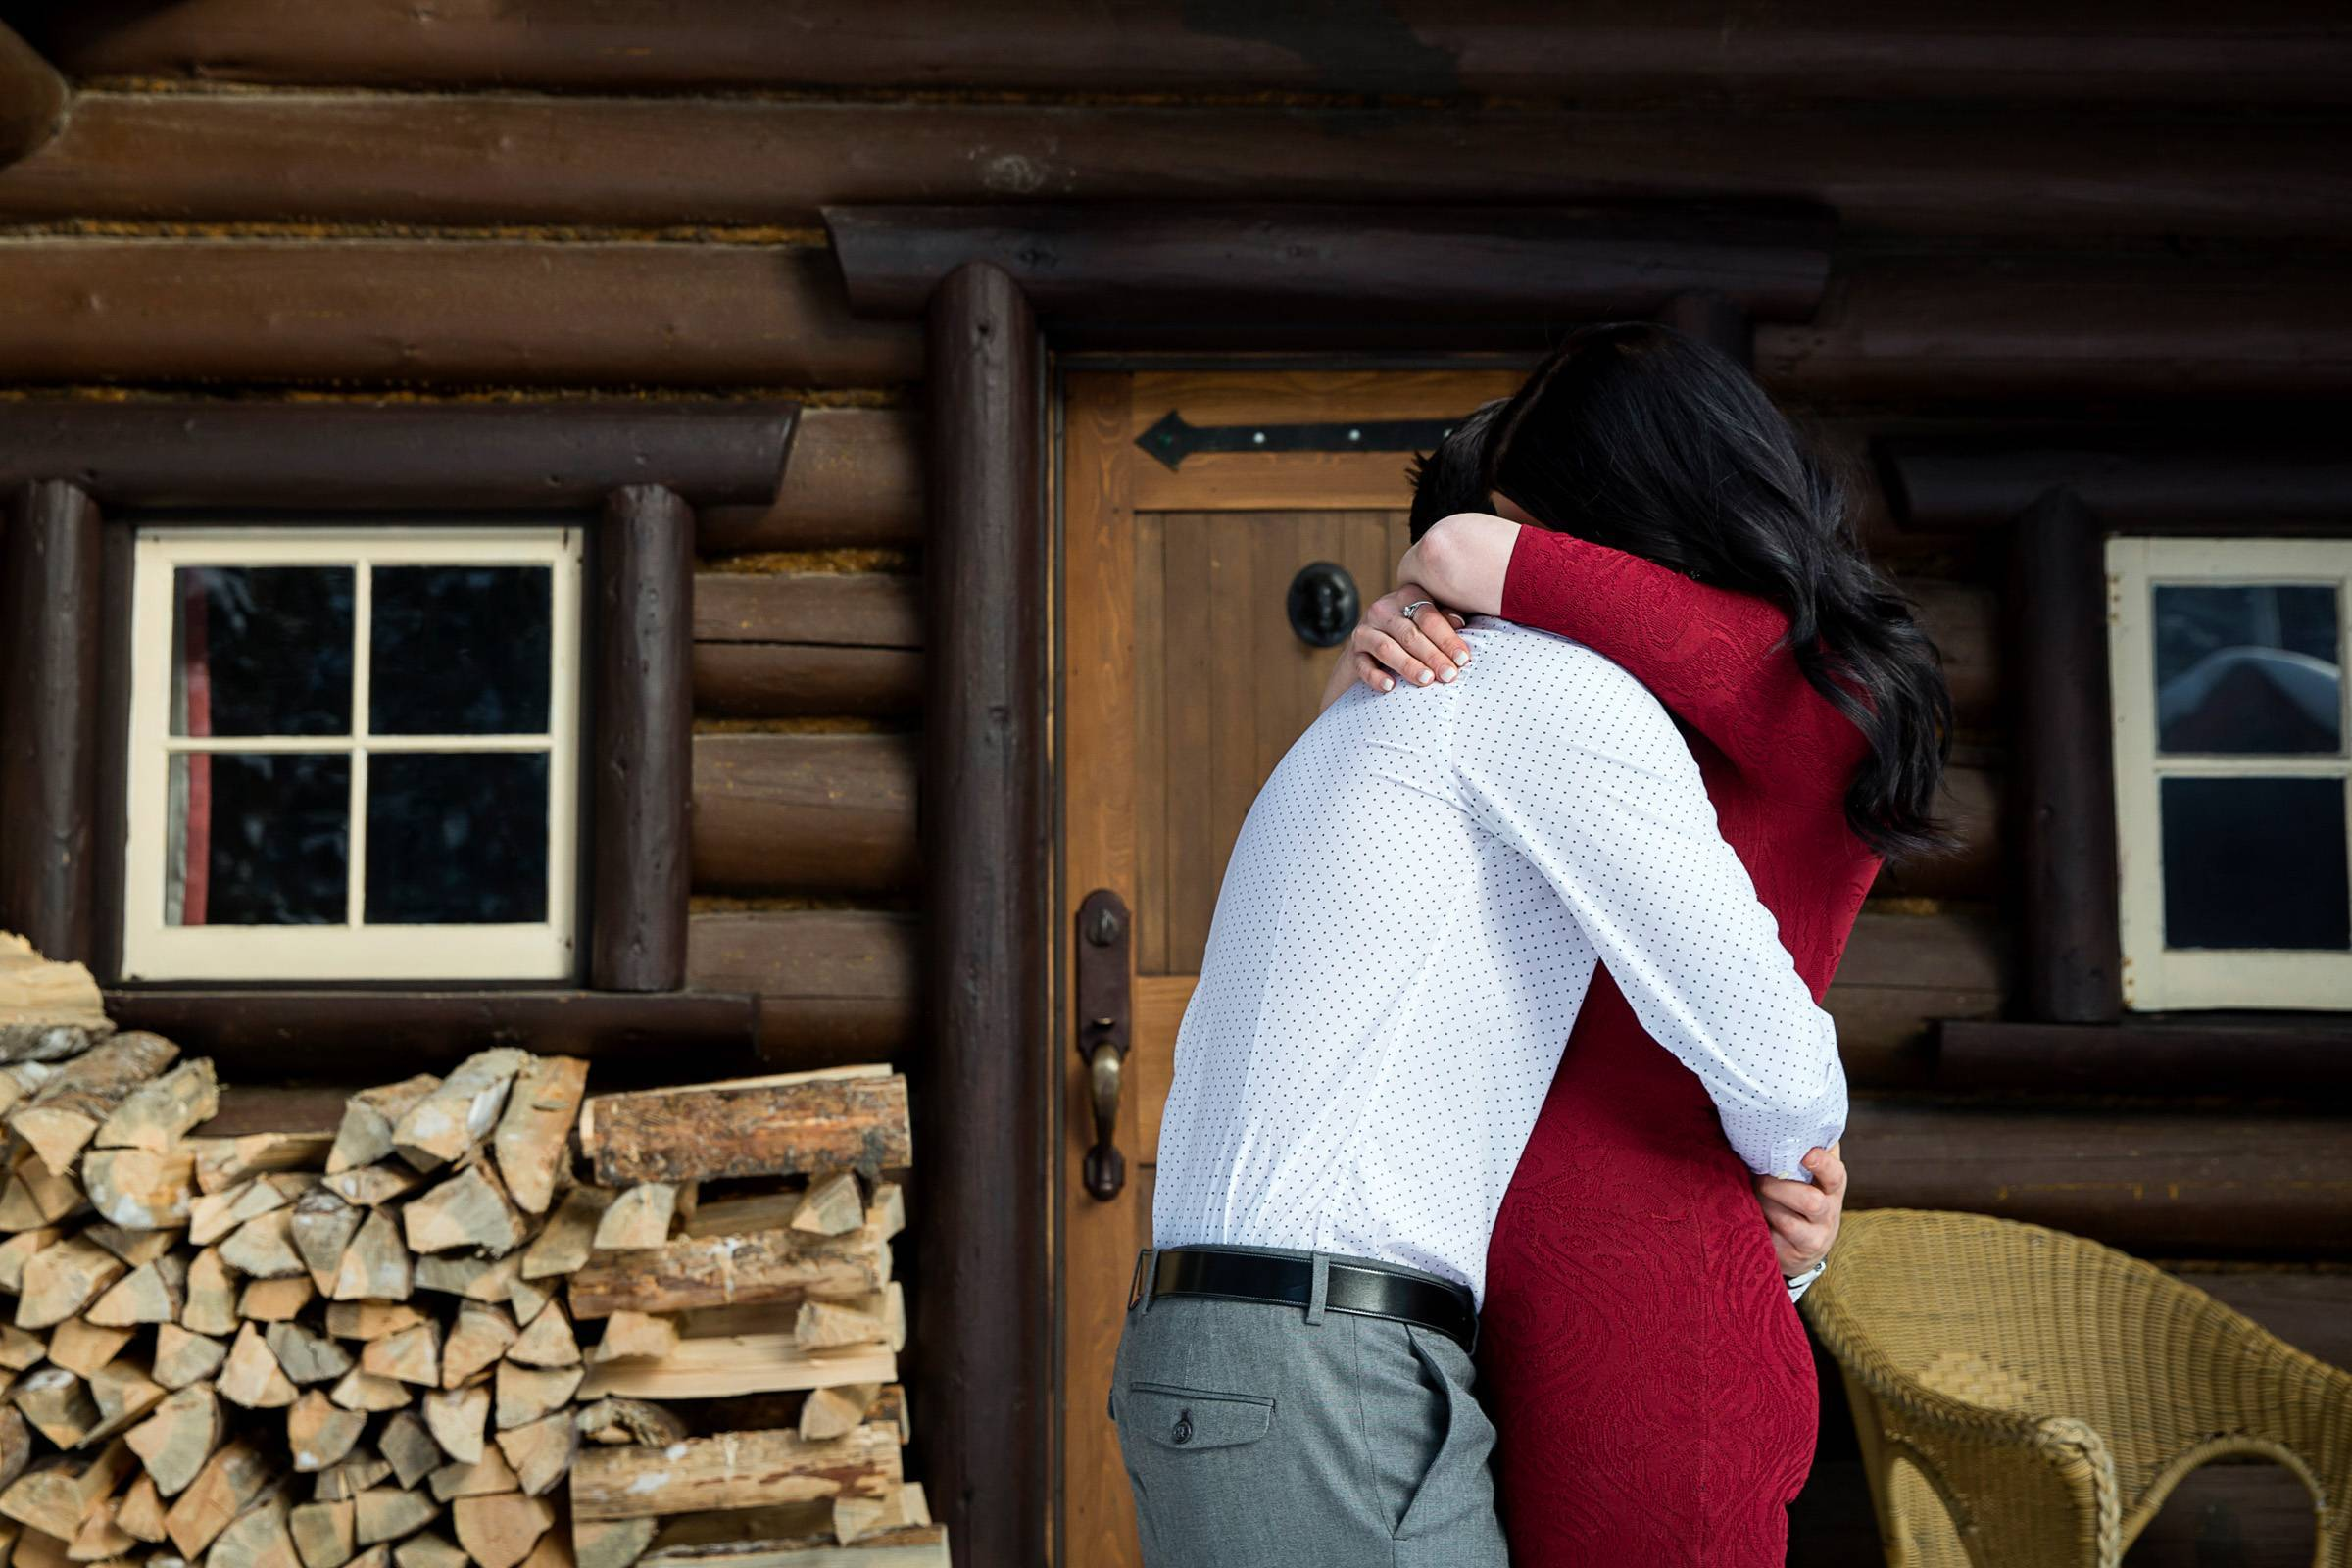 Storm Mountain Lodge Proposal, Banff Proposal, Banff wedding photographer, Banff proposal photograph